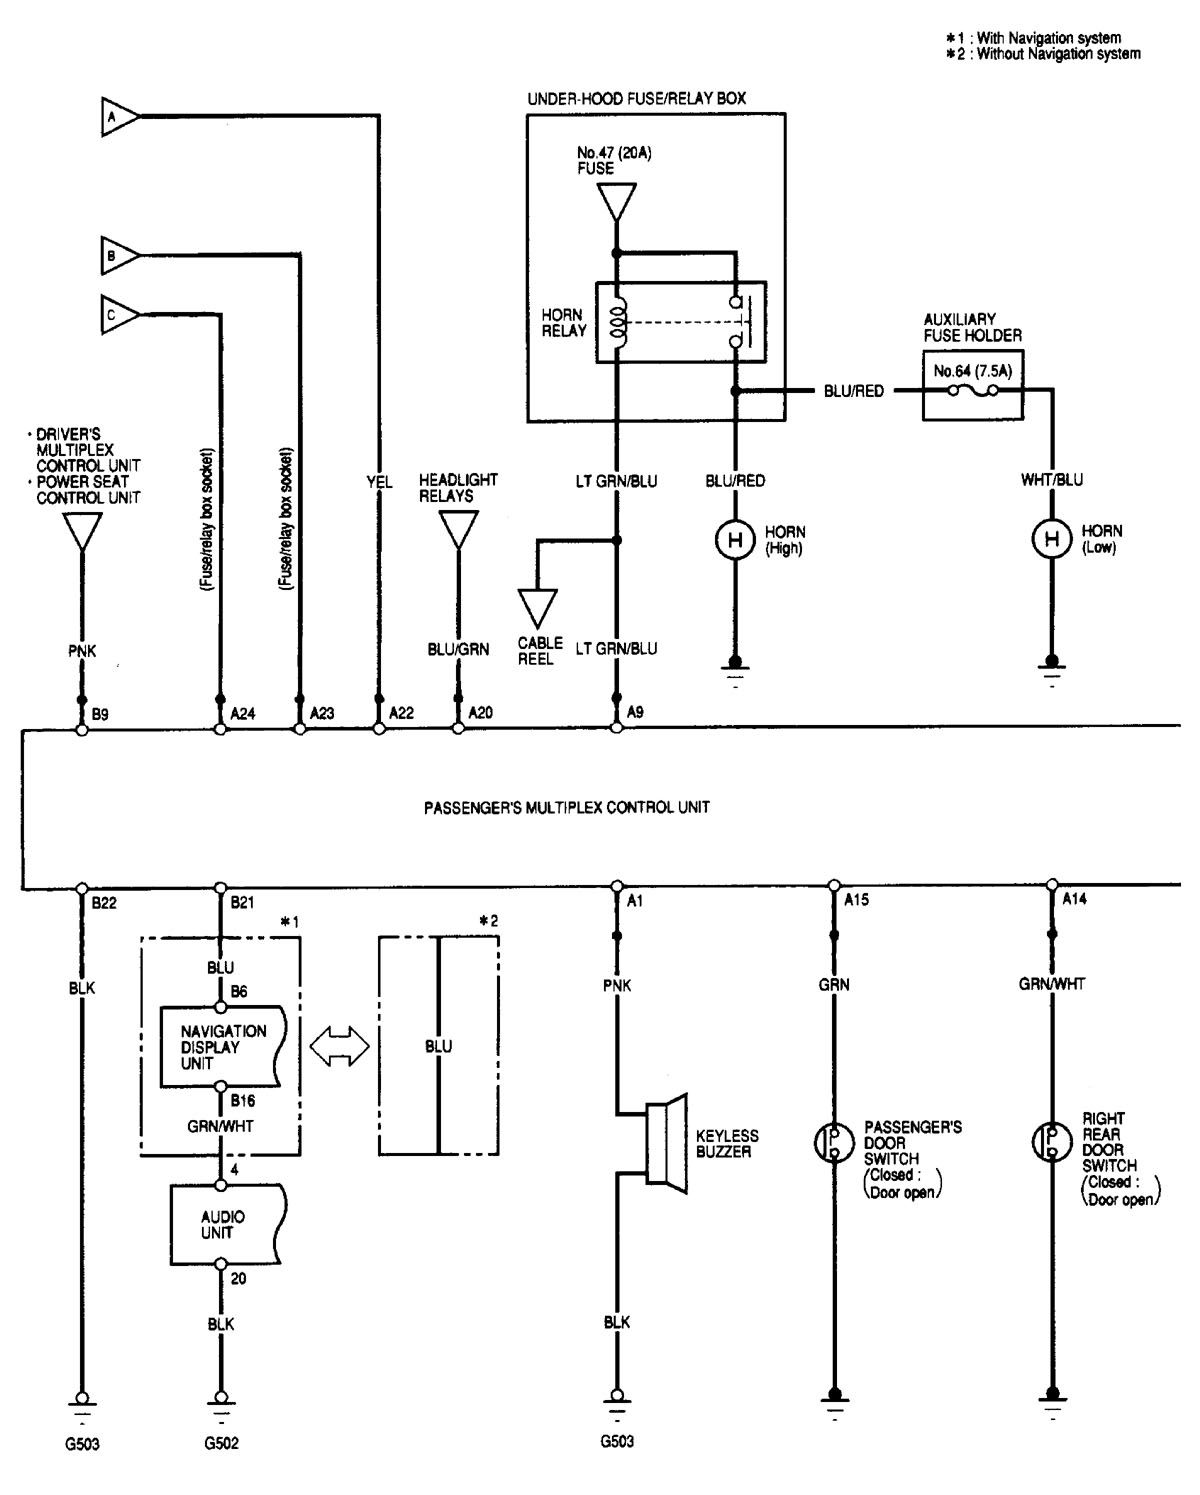 2008 F250 Fog Light Wiring Diagram Diagrams F350 Images Gallery